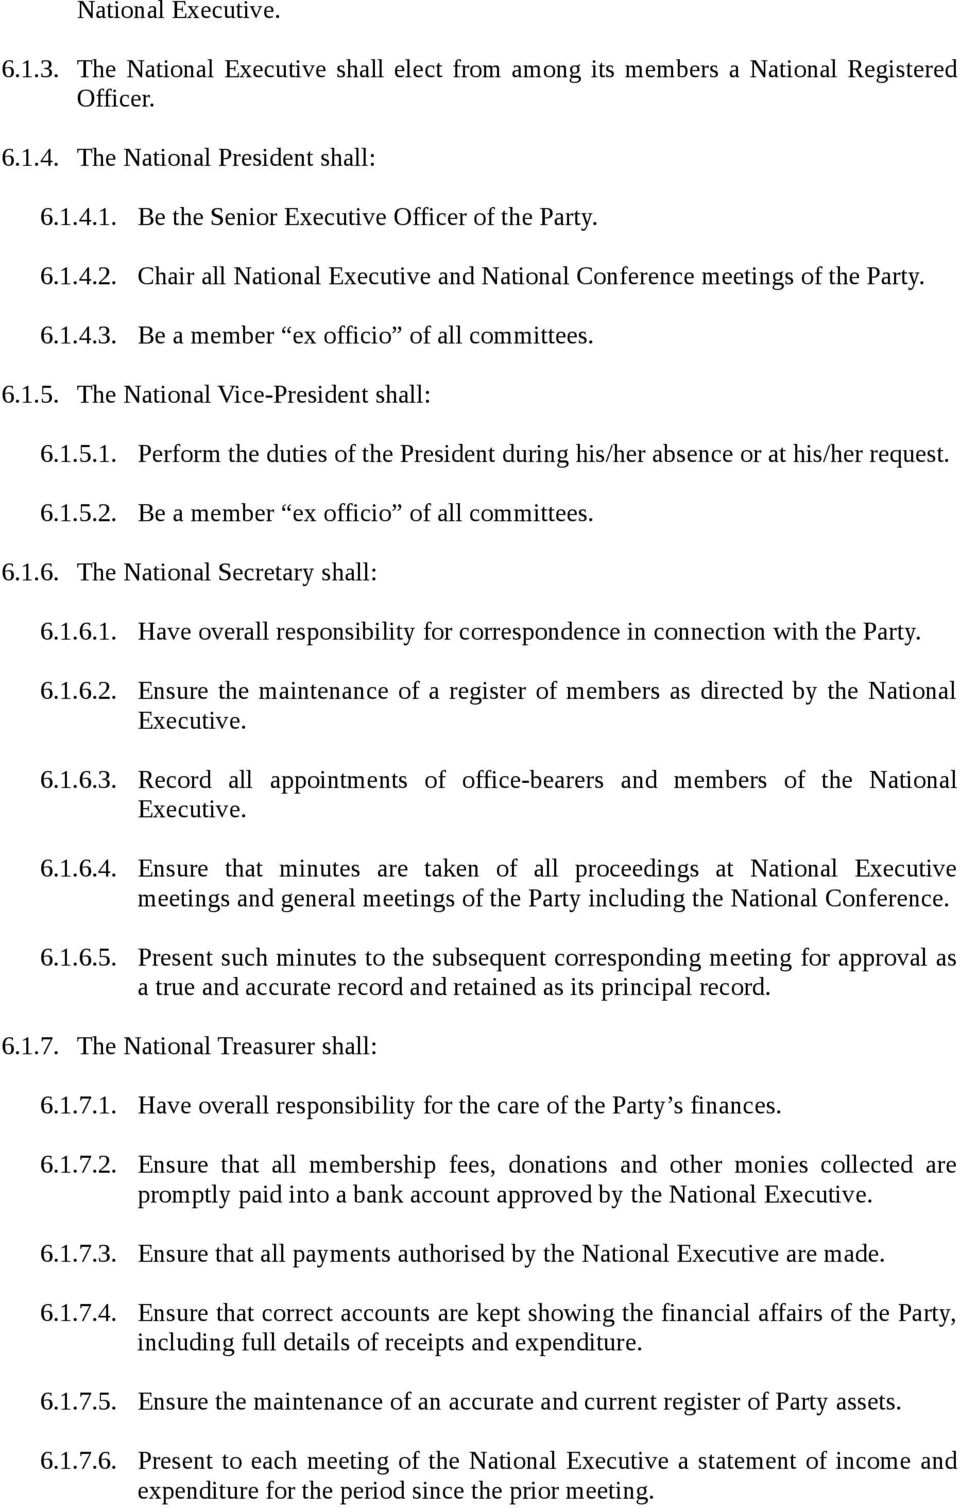 6.1.5.2. Be a member ex officio of all committees. 6.1.6. The National Secretary shall: 6.1.6.1. Have overall responsibility for correspondence in connection with the Party. 6.1.6.2. Ensure the maintenance of a register of members as directed by the National Executive.